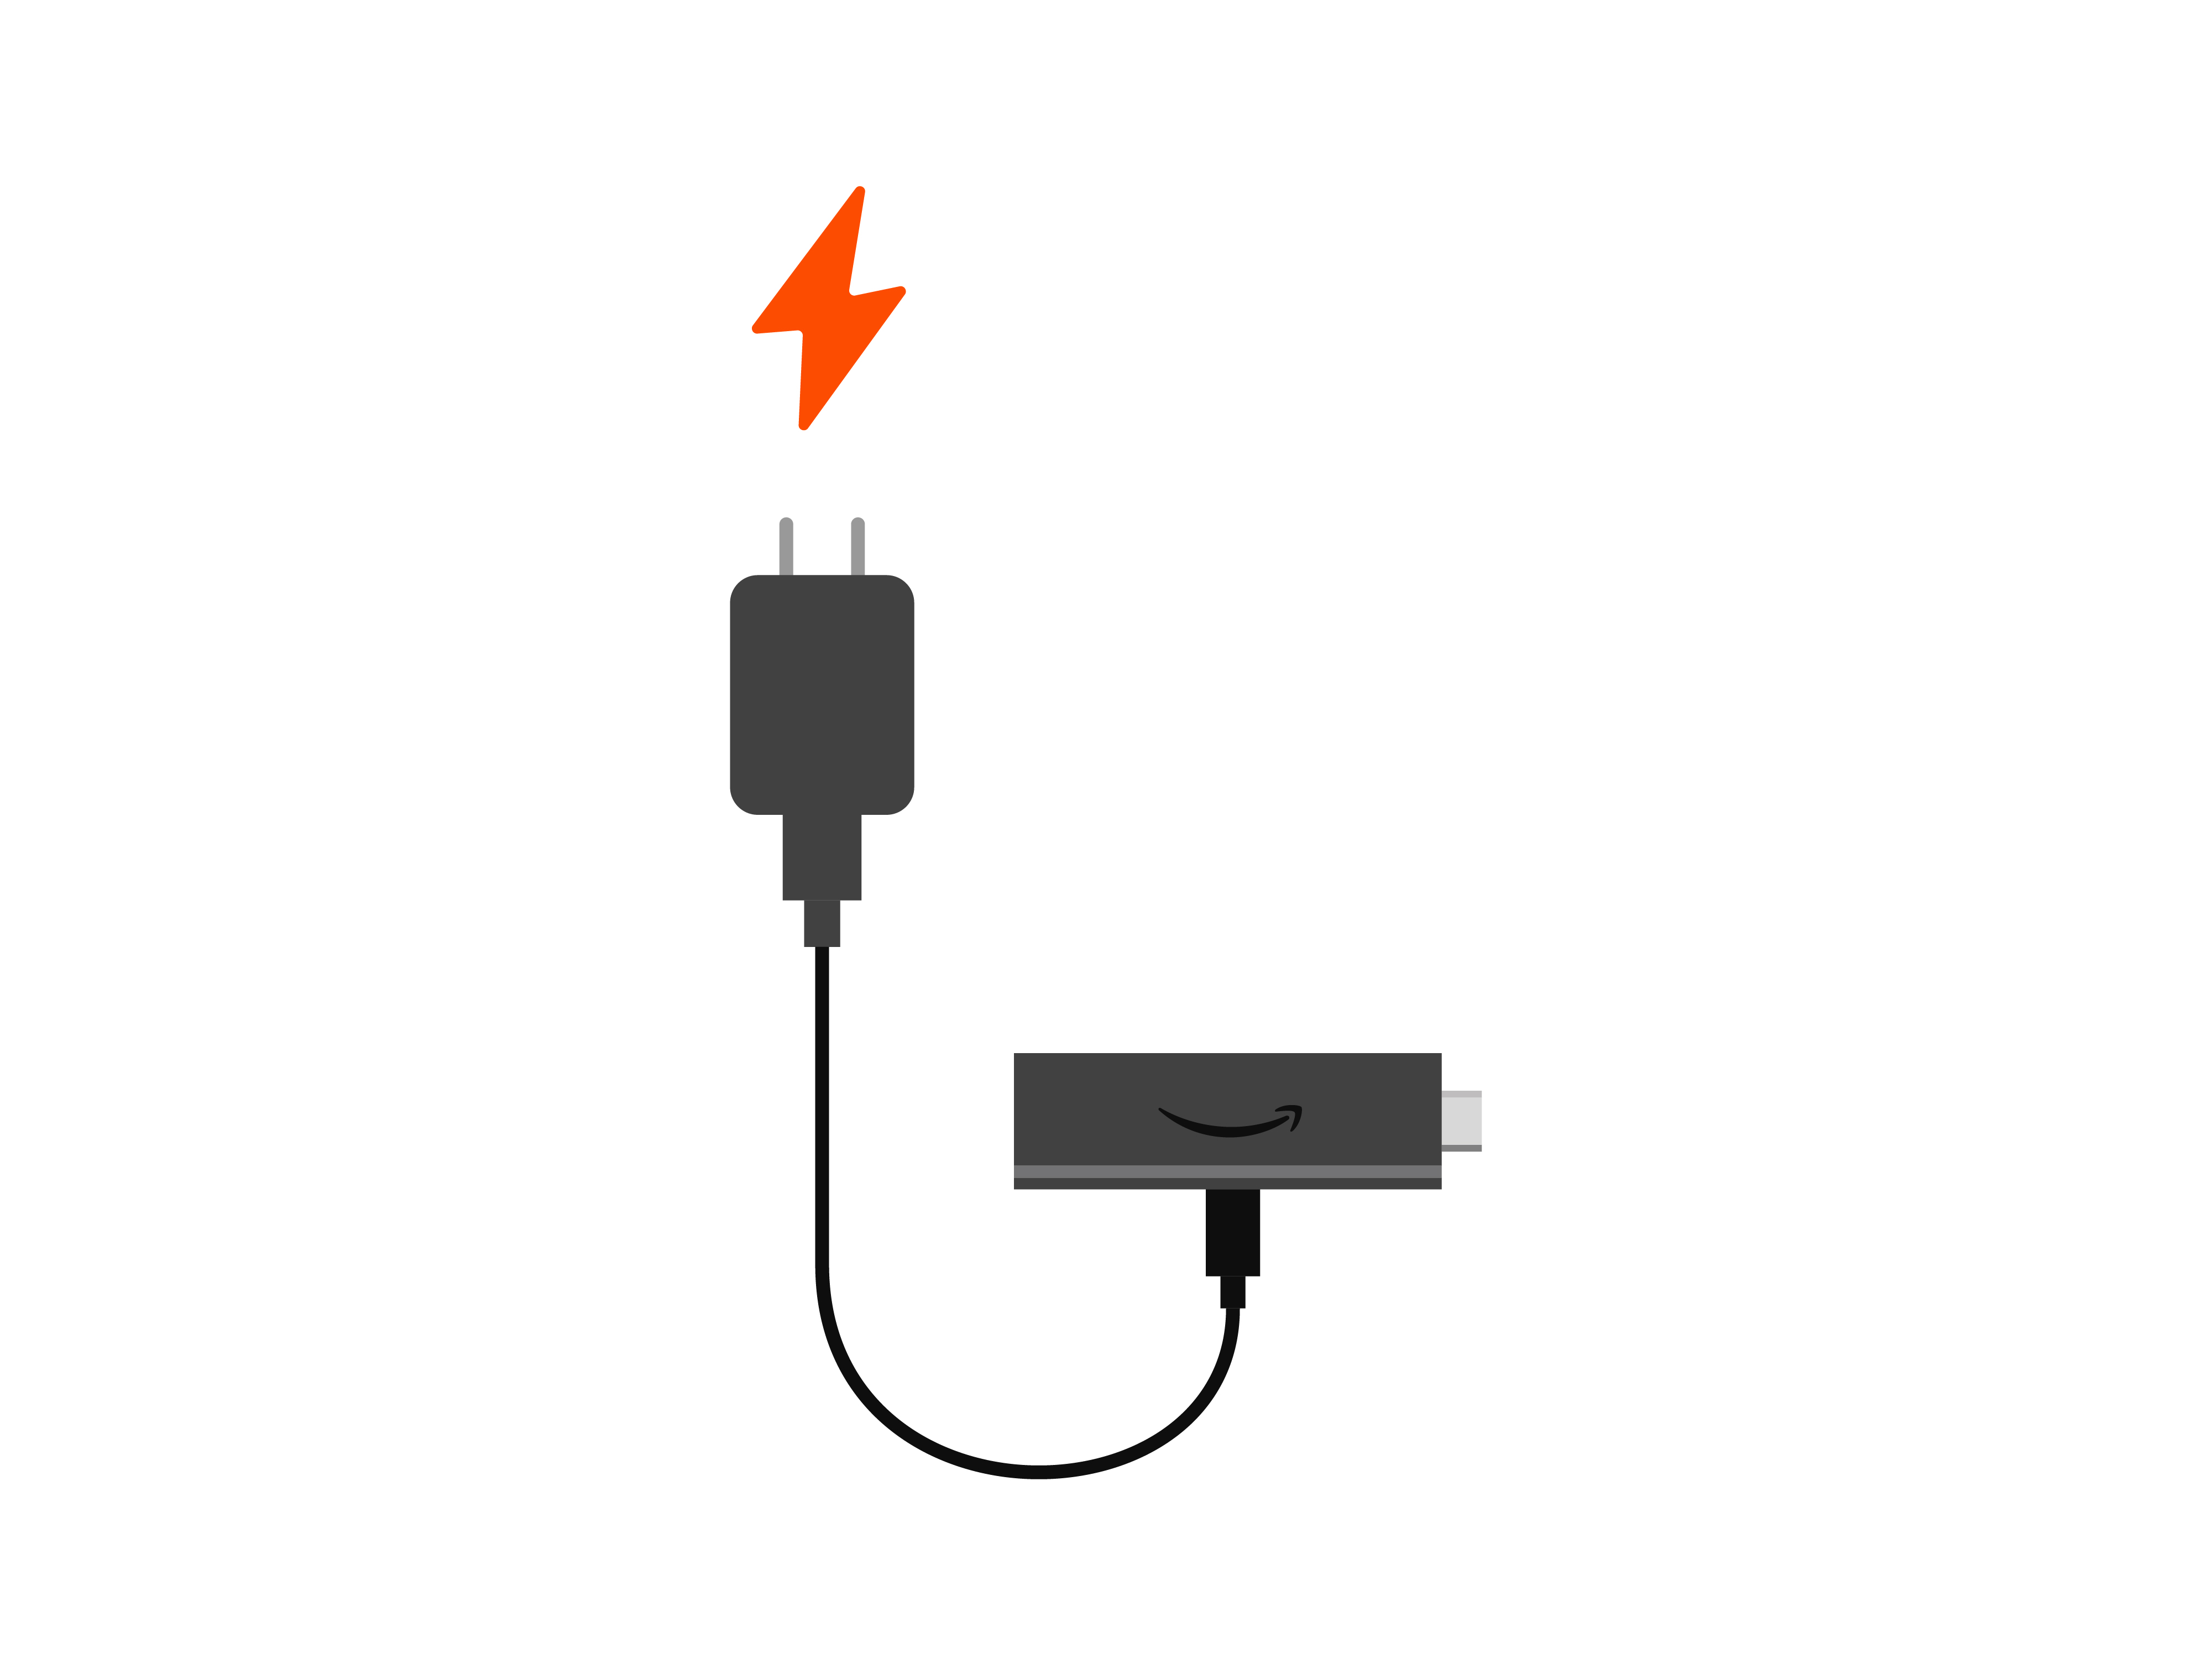 2. Plug into wall outlet.